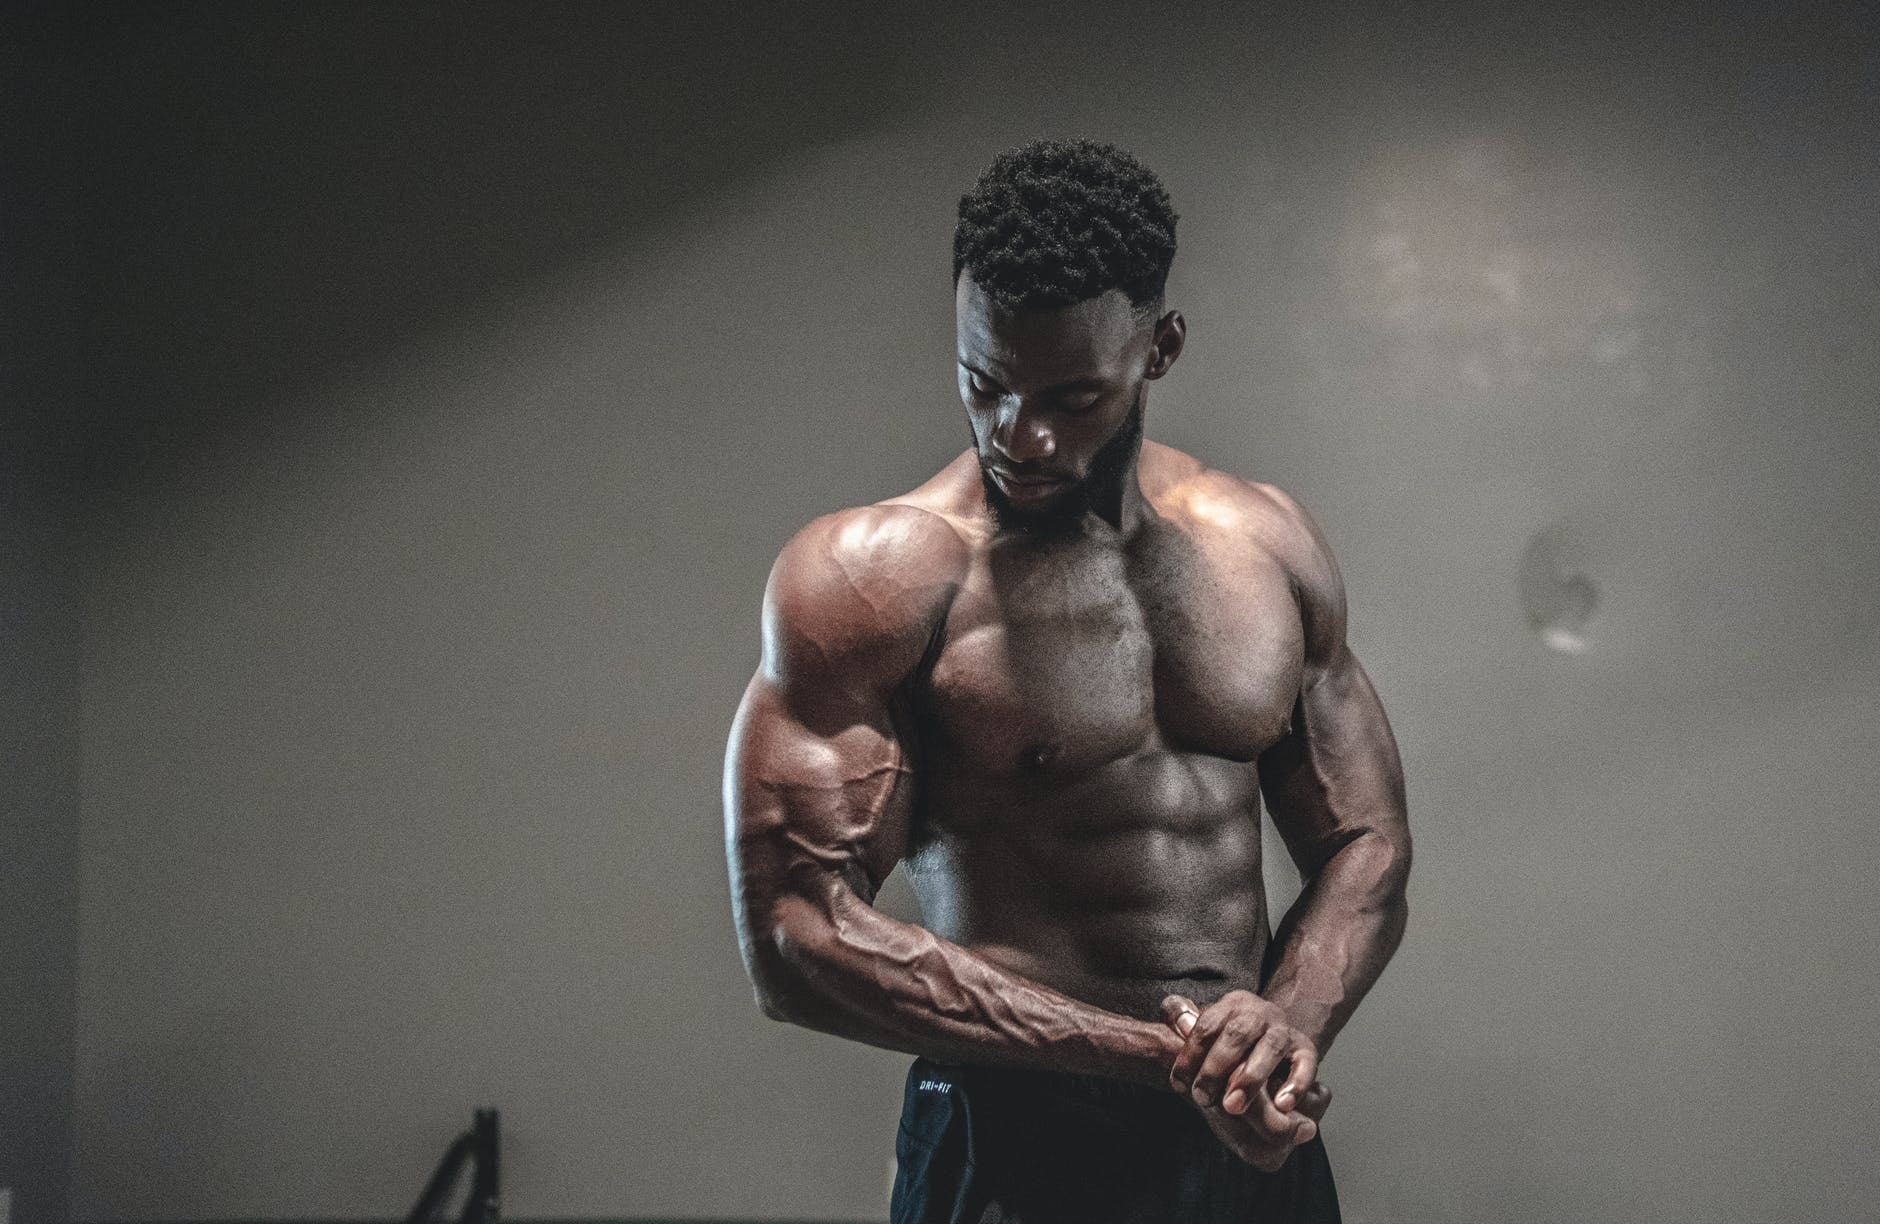 photo of man with muscular body